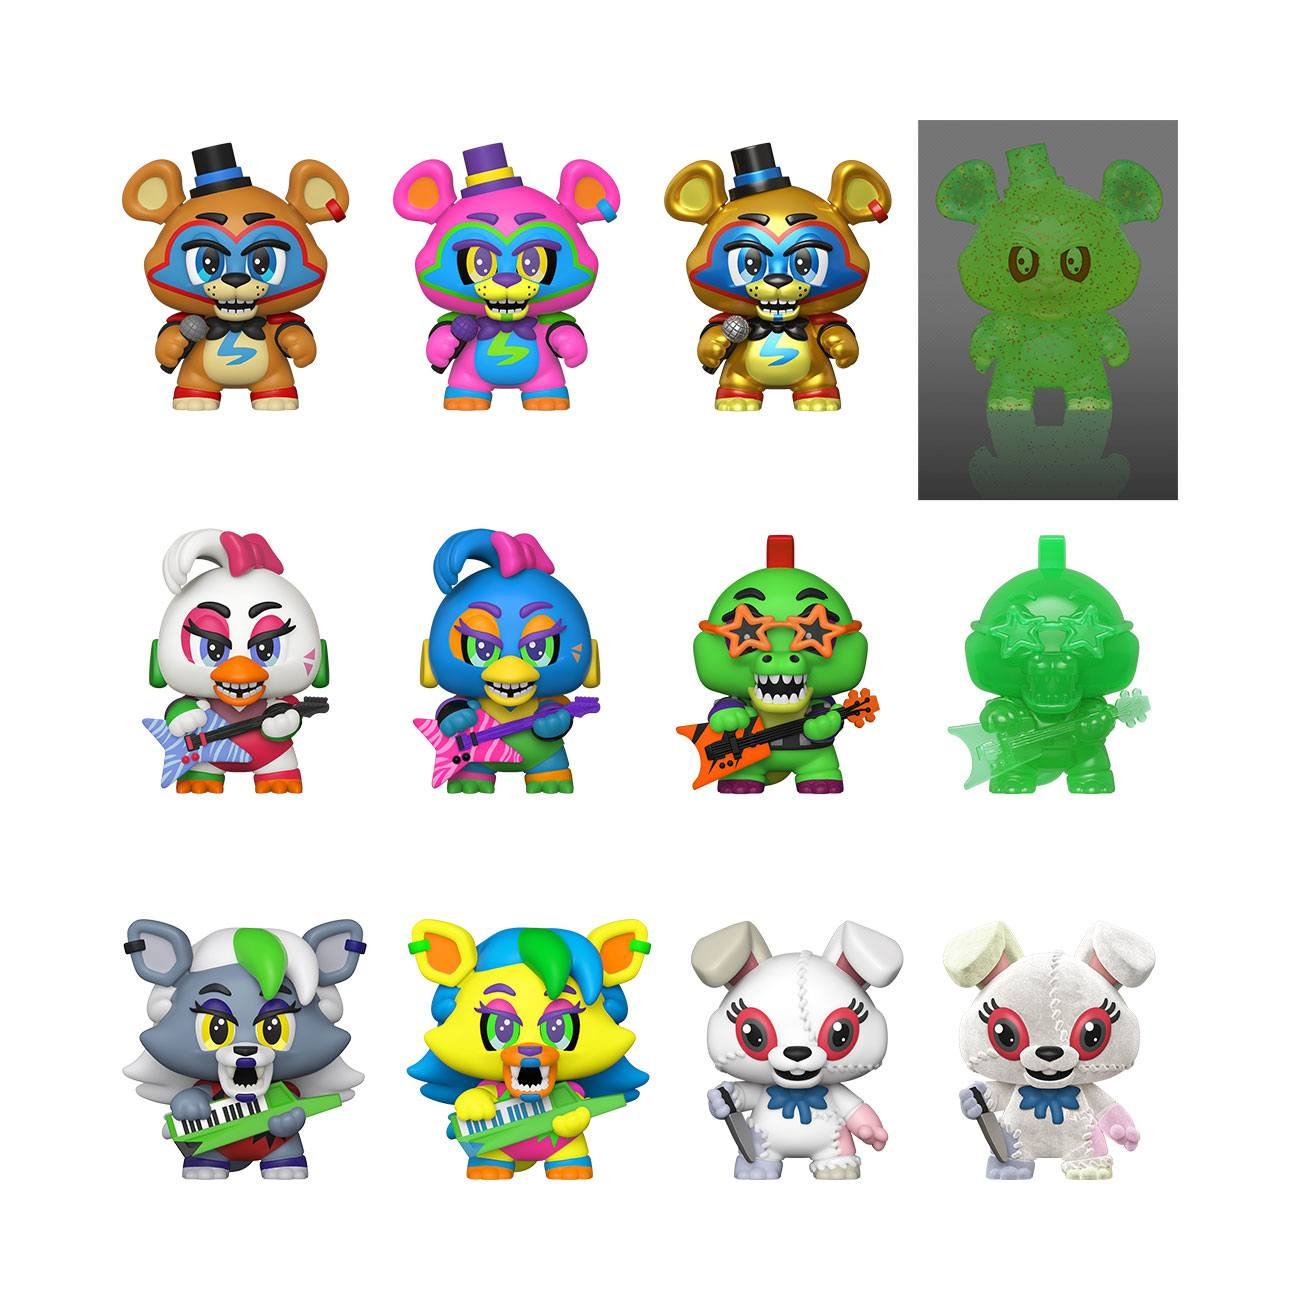 Five Nights at Freddy's Mystery Minis Vinyl Mini Figures 6 cm Display Security Breach (12)